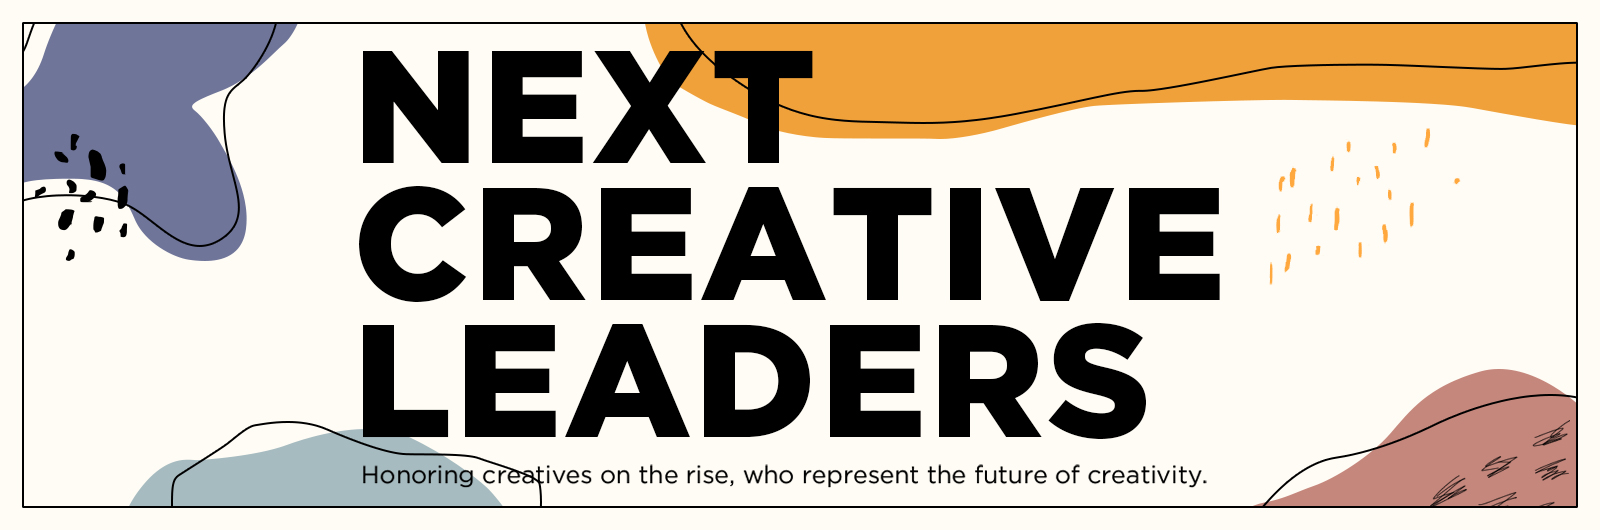 Next Creative Leaders 2020